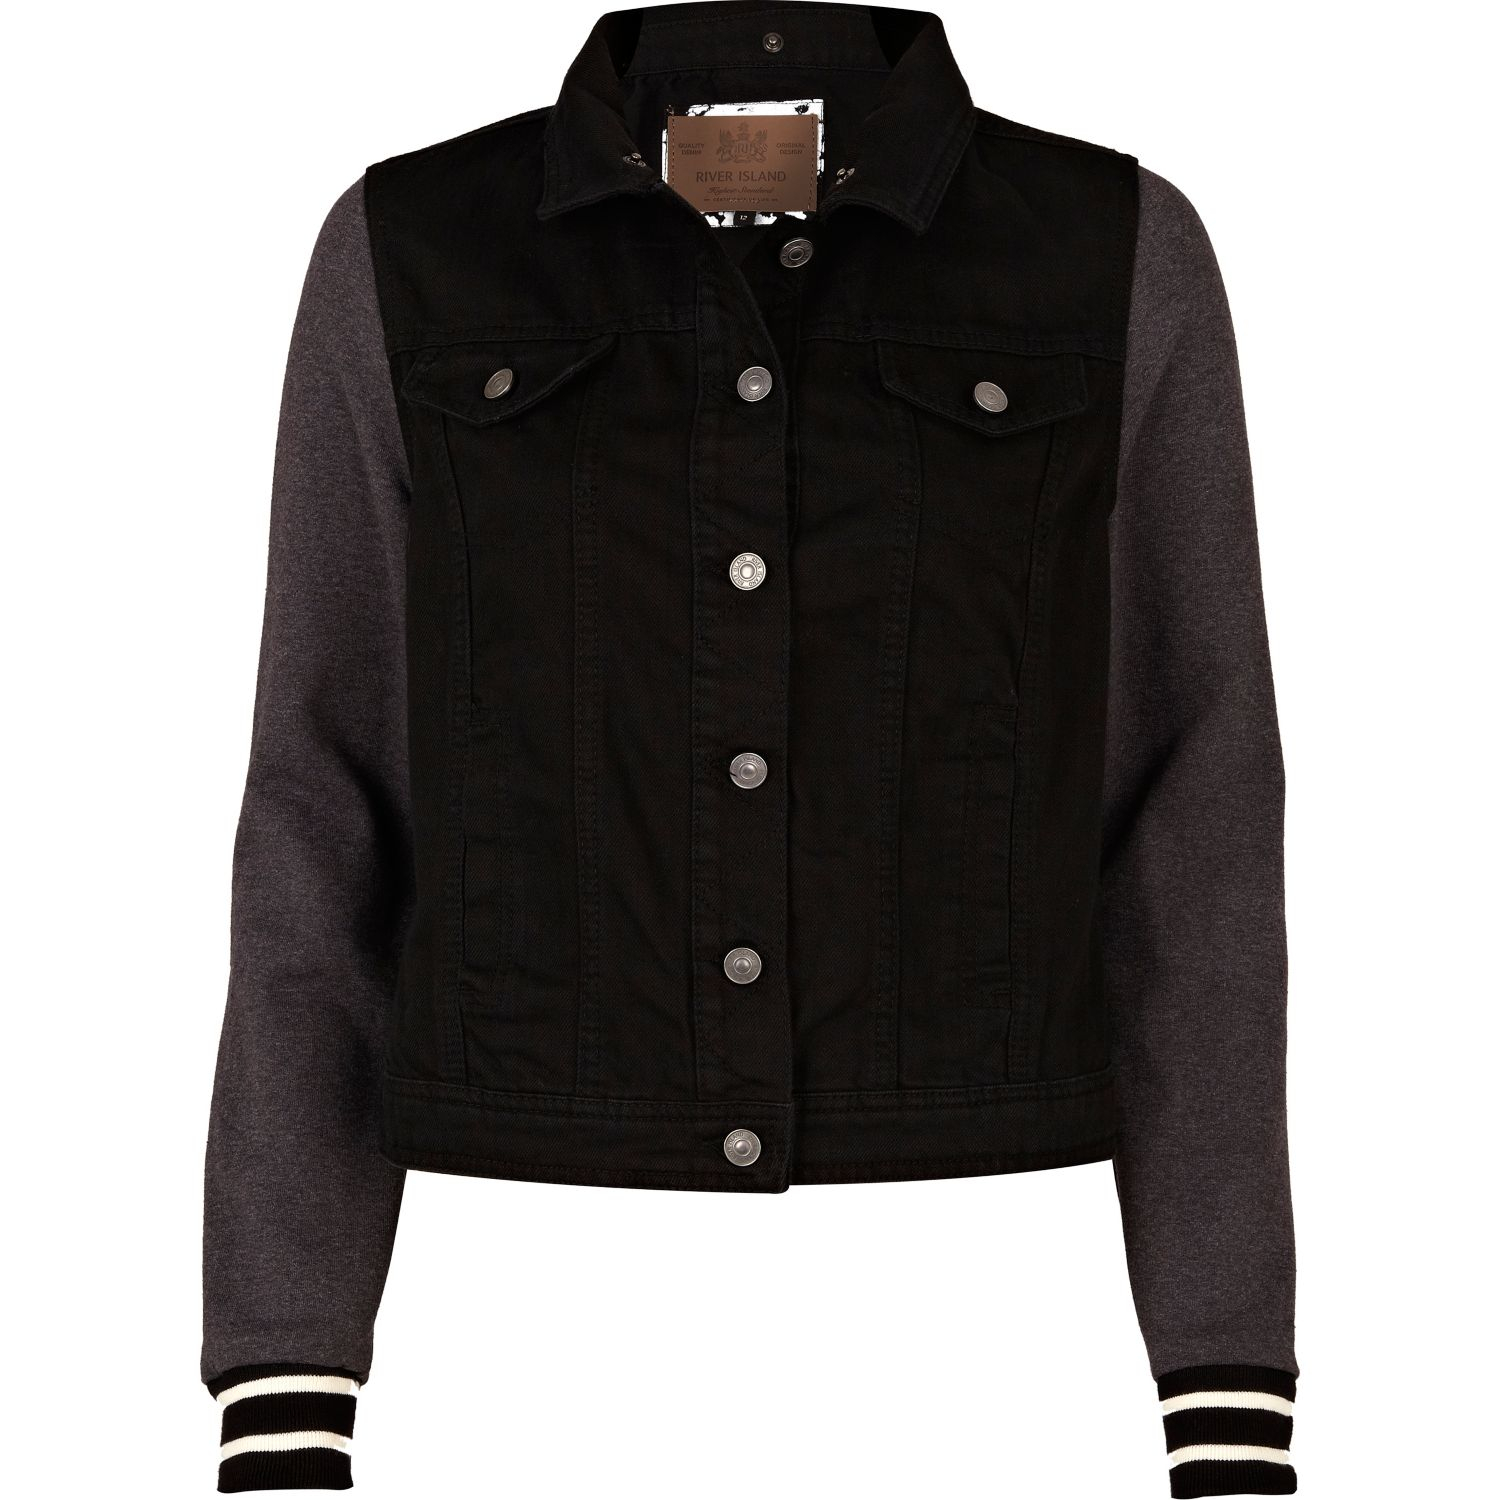 Find great deals on eBay for denim jersey hooded jacket. Shop with confidence.